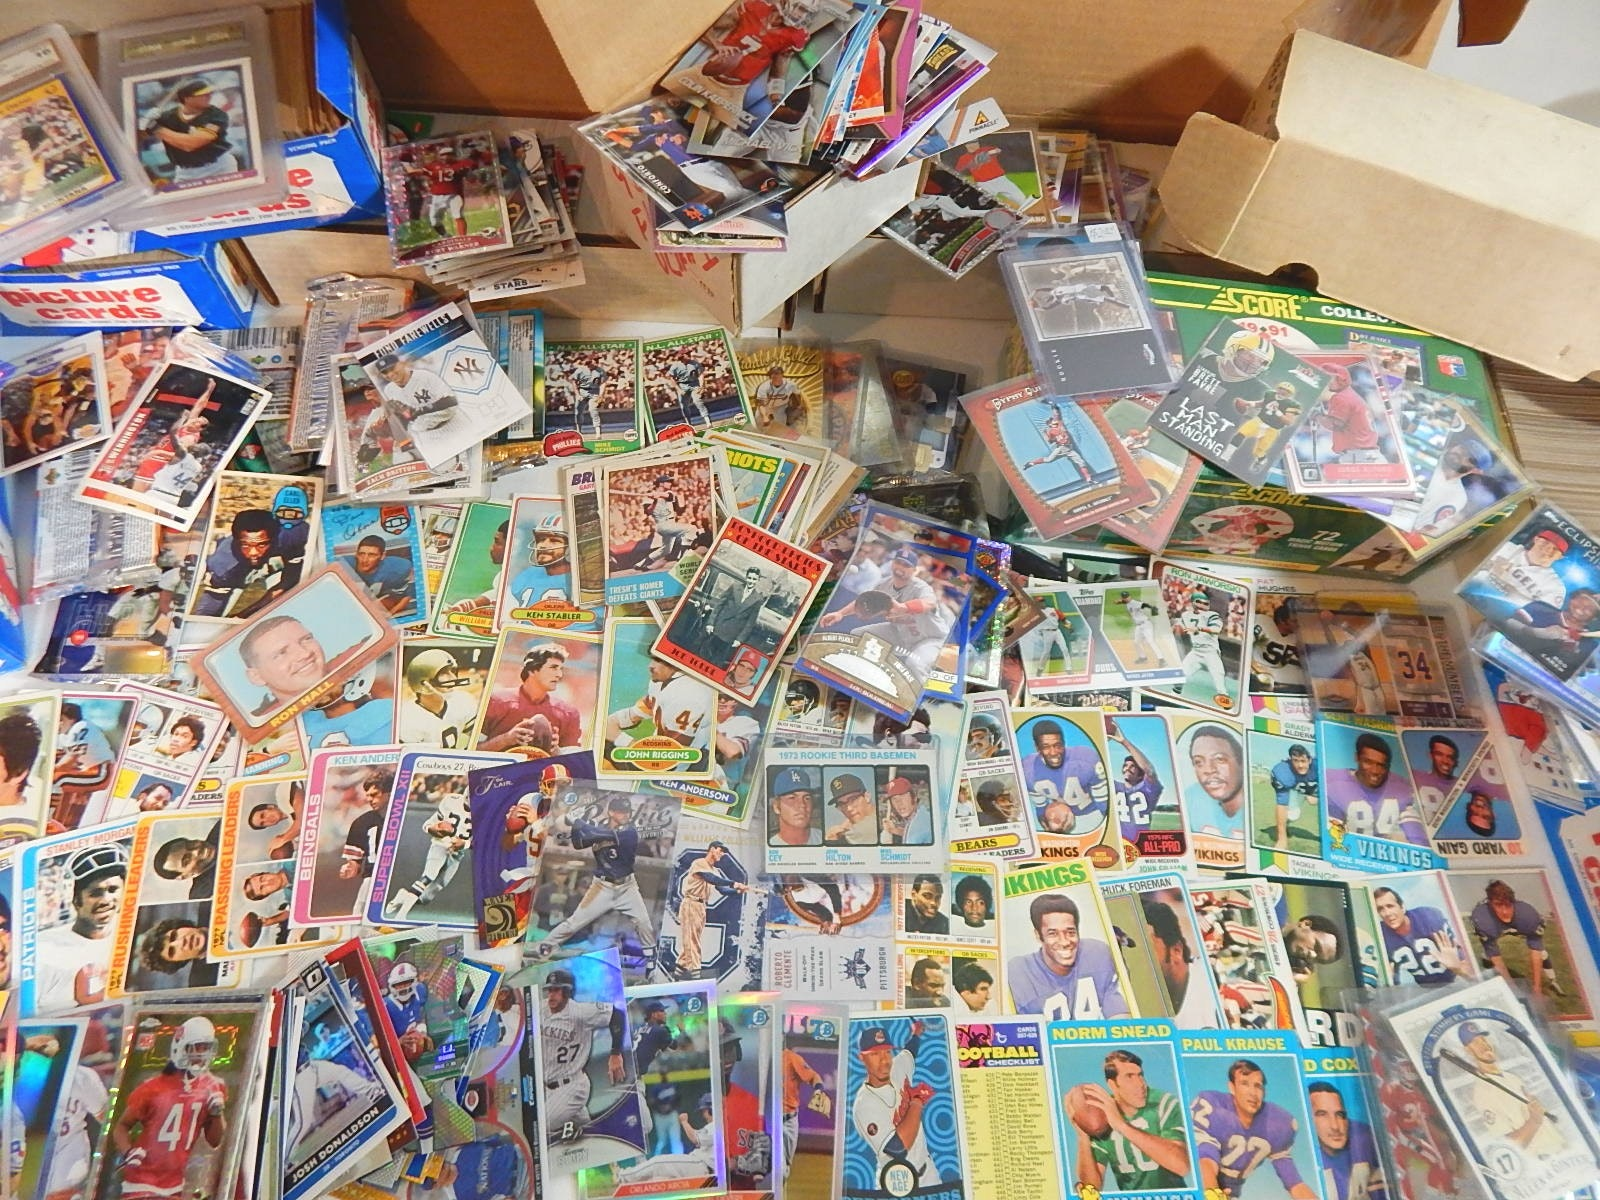 Large Sports Card Collection Mostly 1980s w/ Schmidt RC - Around 5000 Card Count